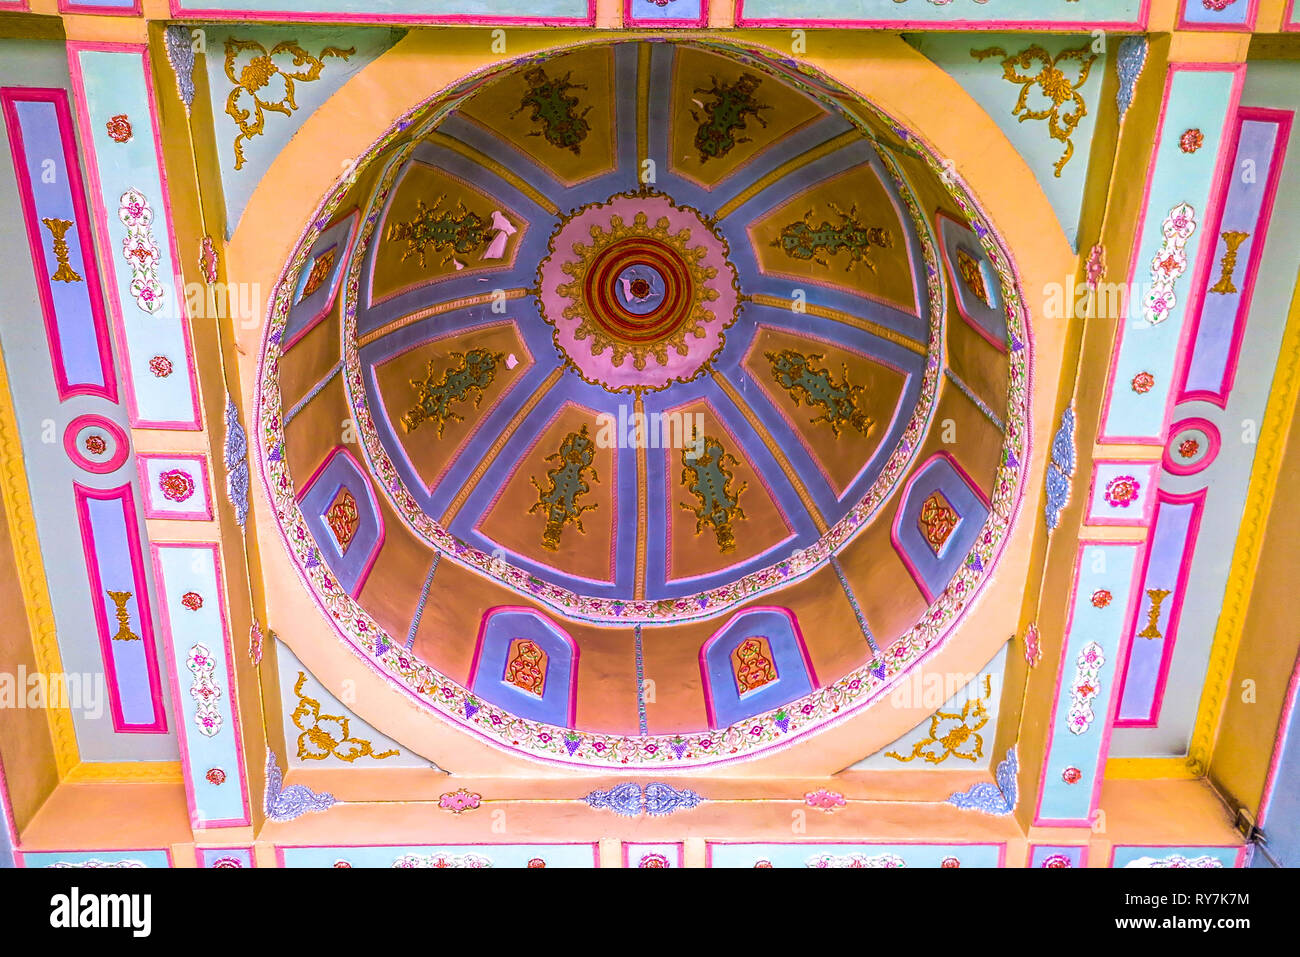 Kuche Royal King Palace Mosque Dome Ceiling Ornament - Stock Image